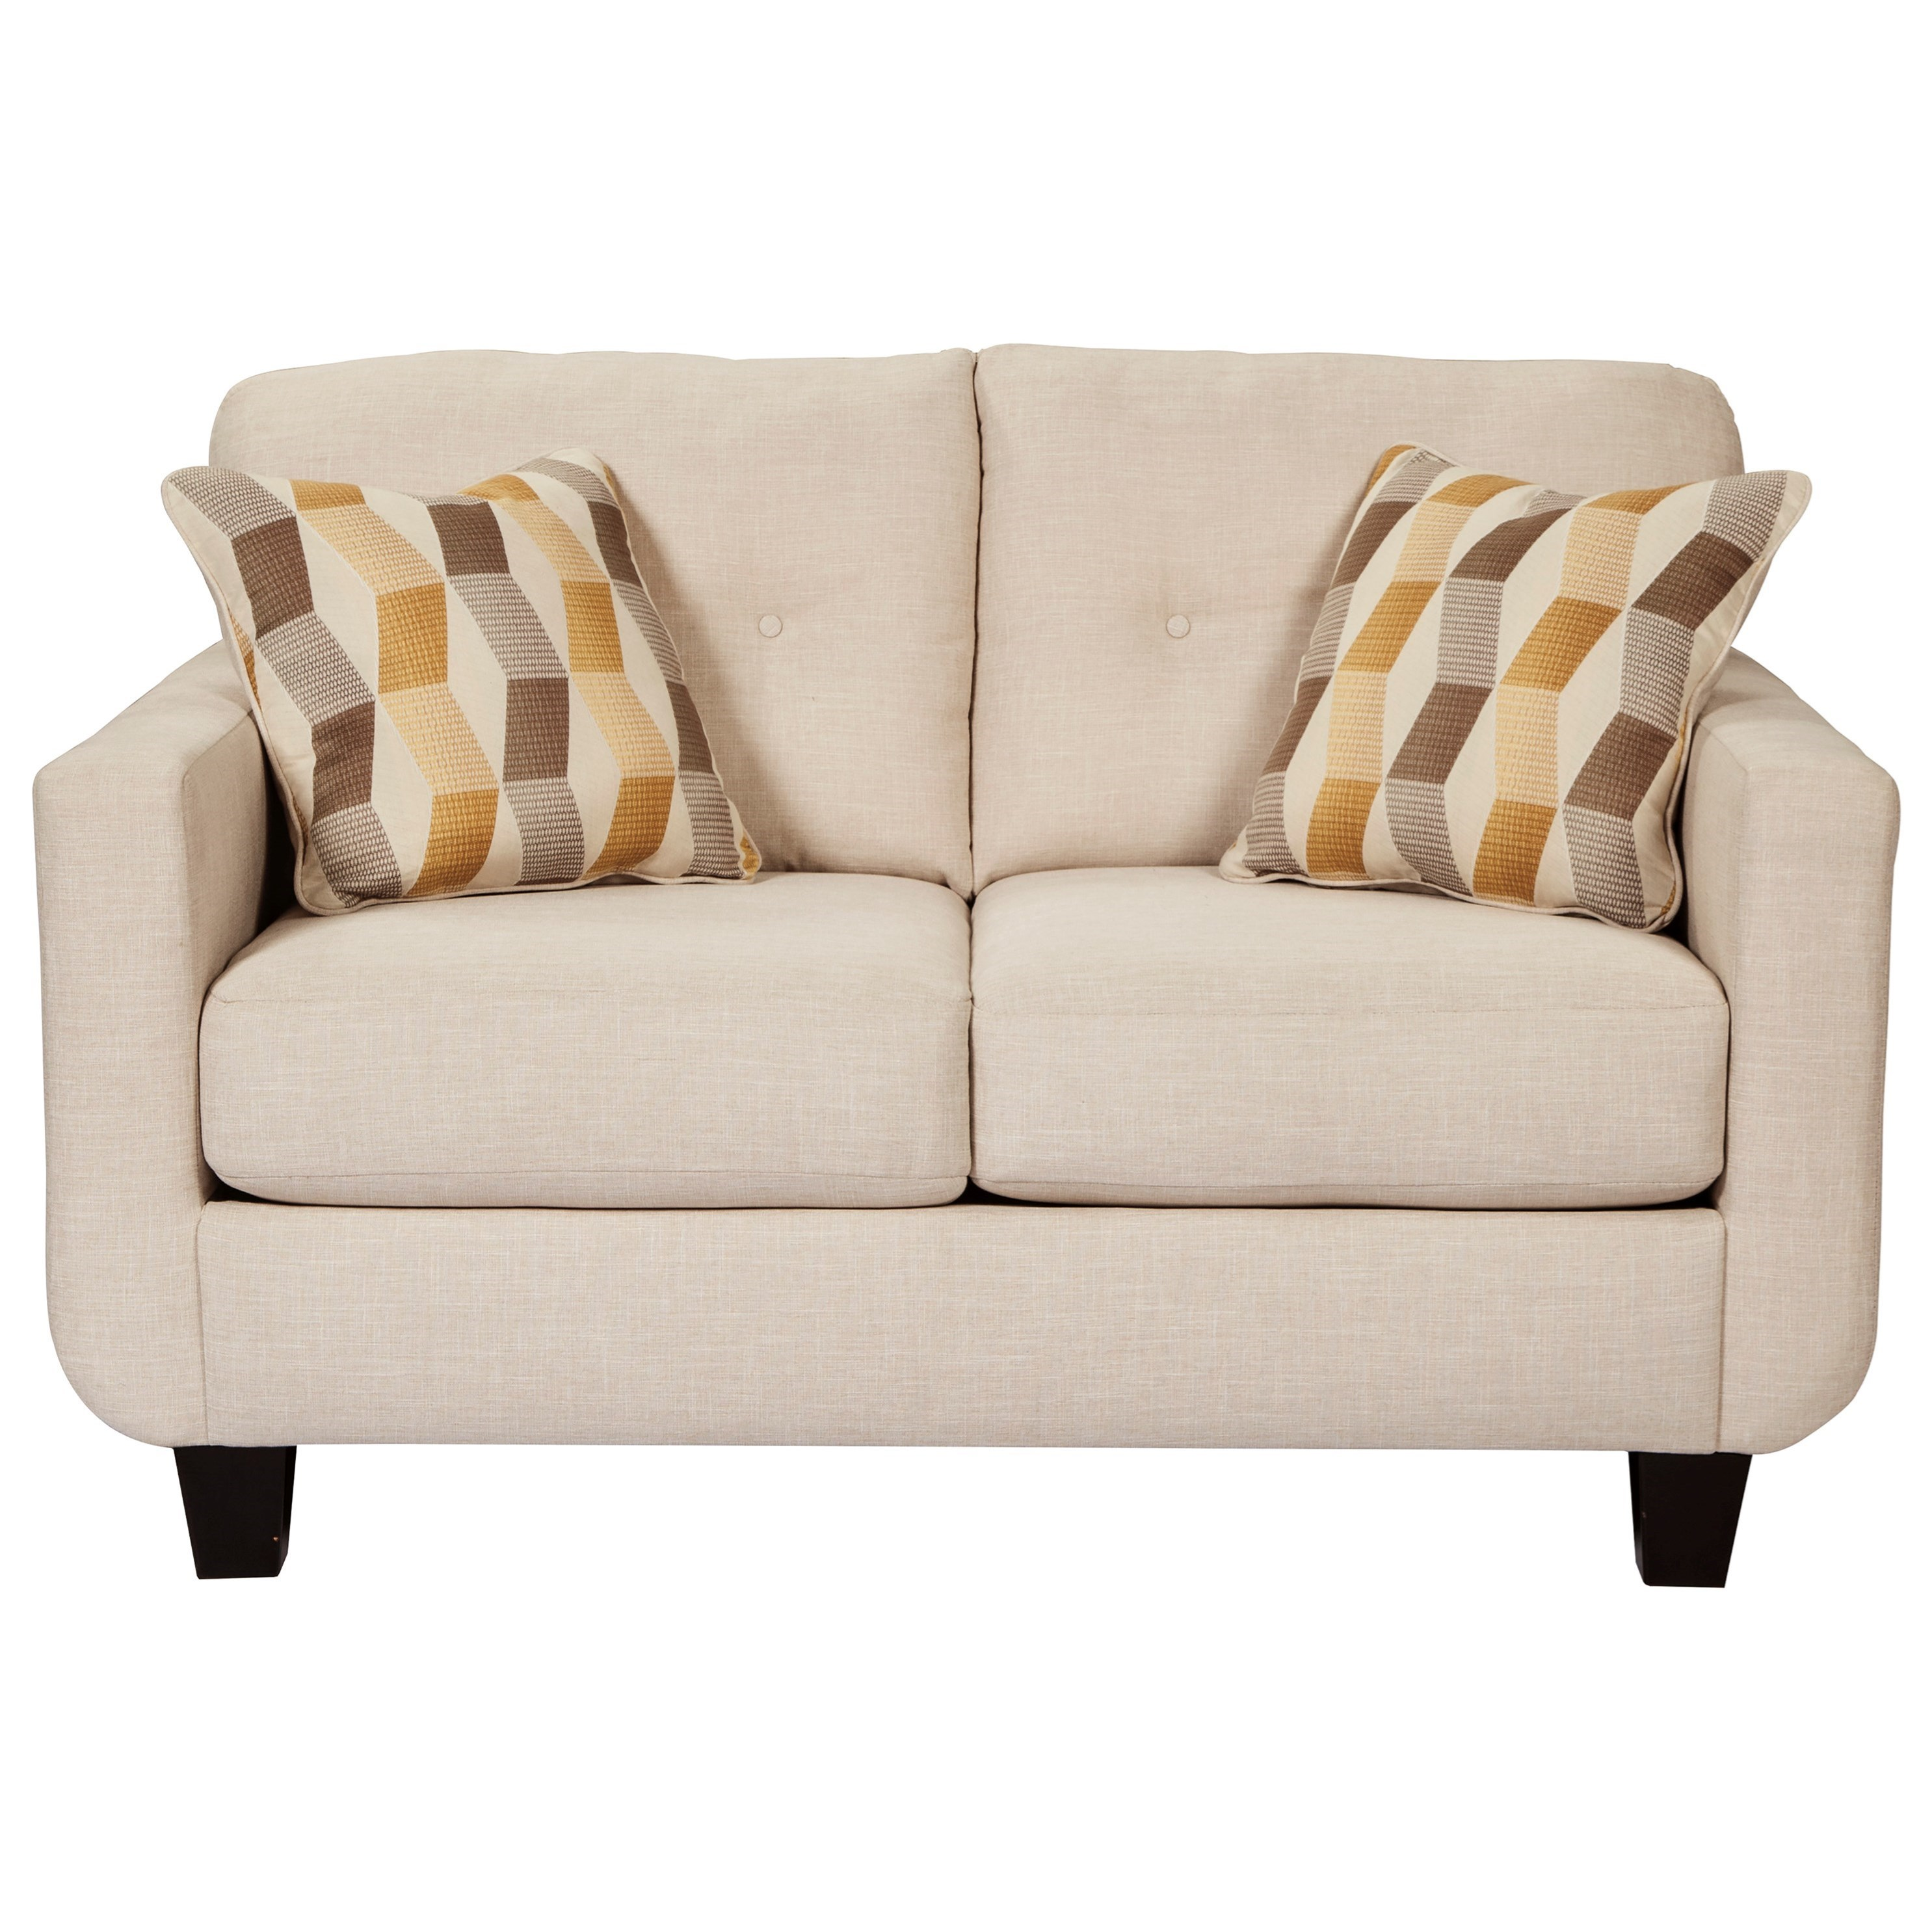 Benchcraft Drasco Loveseat - Item Number: 5980235